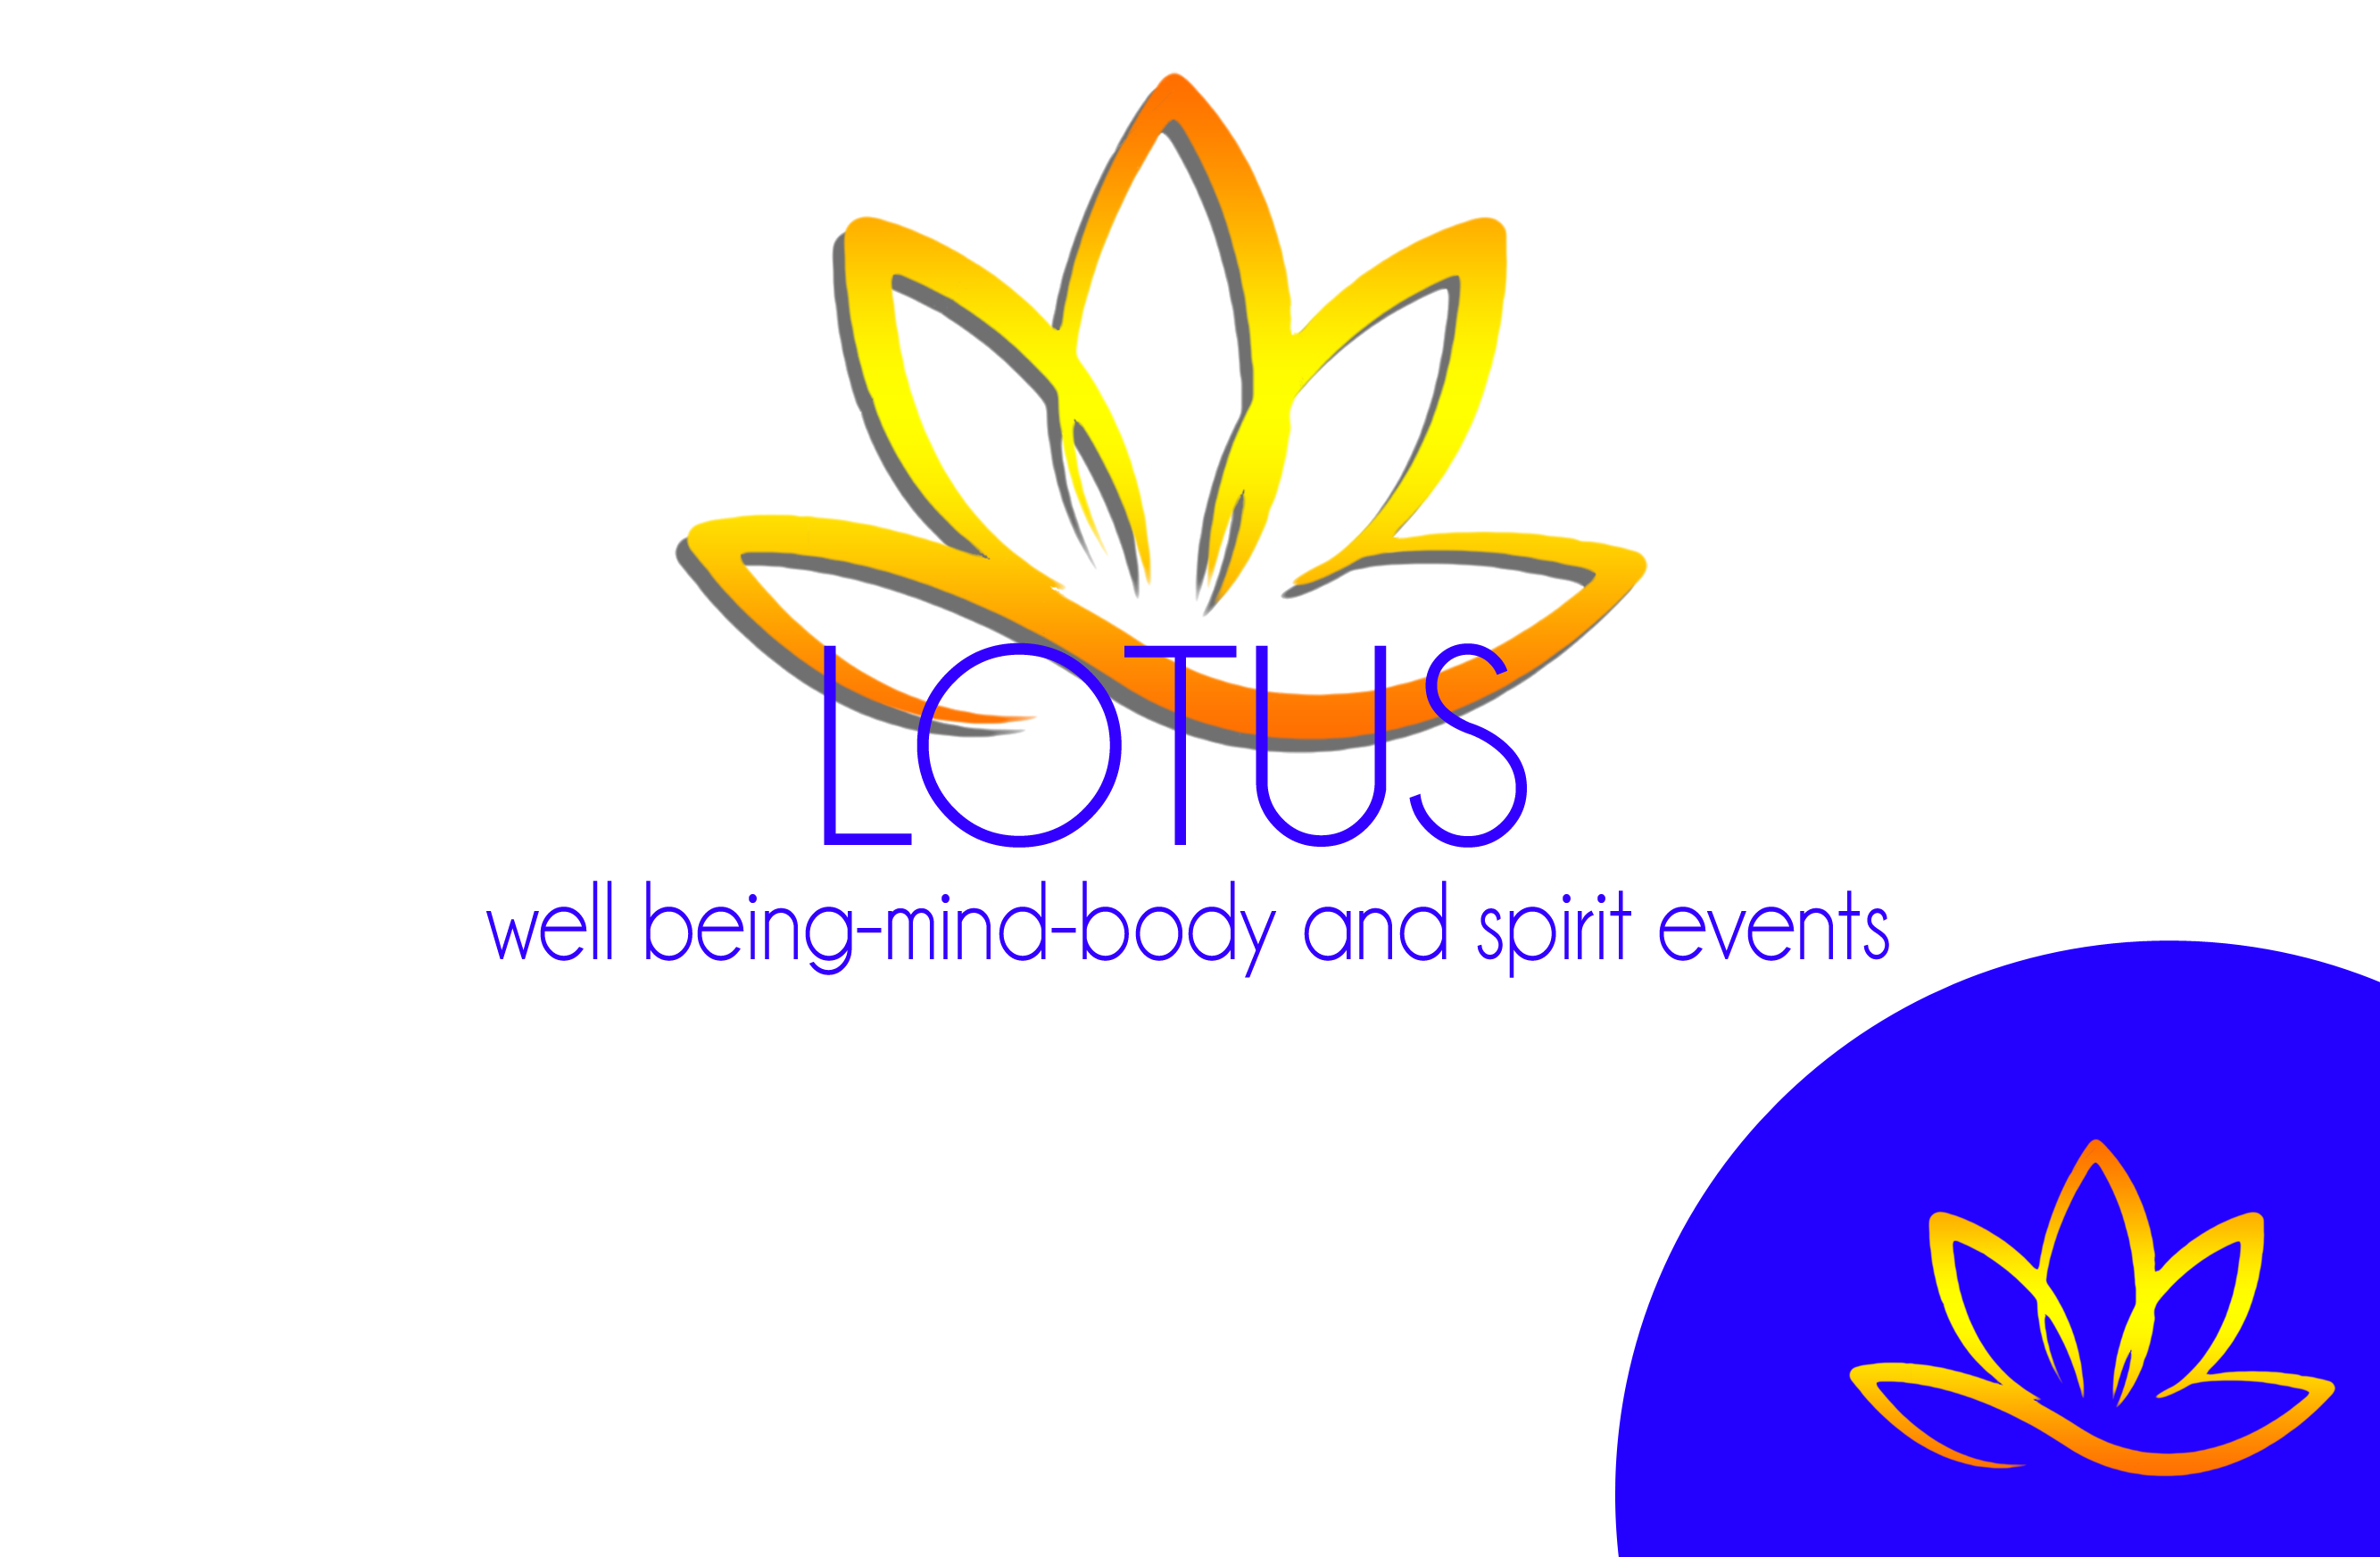 Lotus well-being